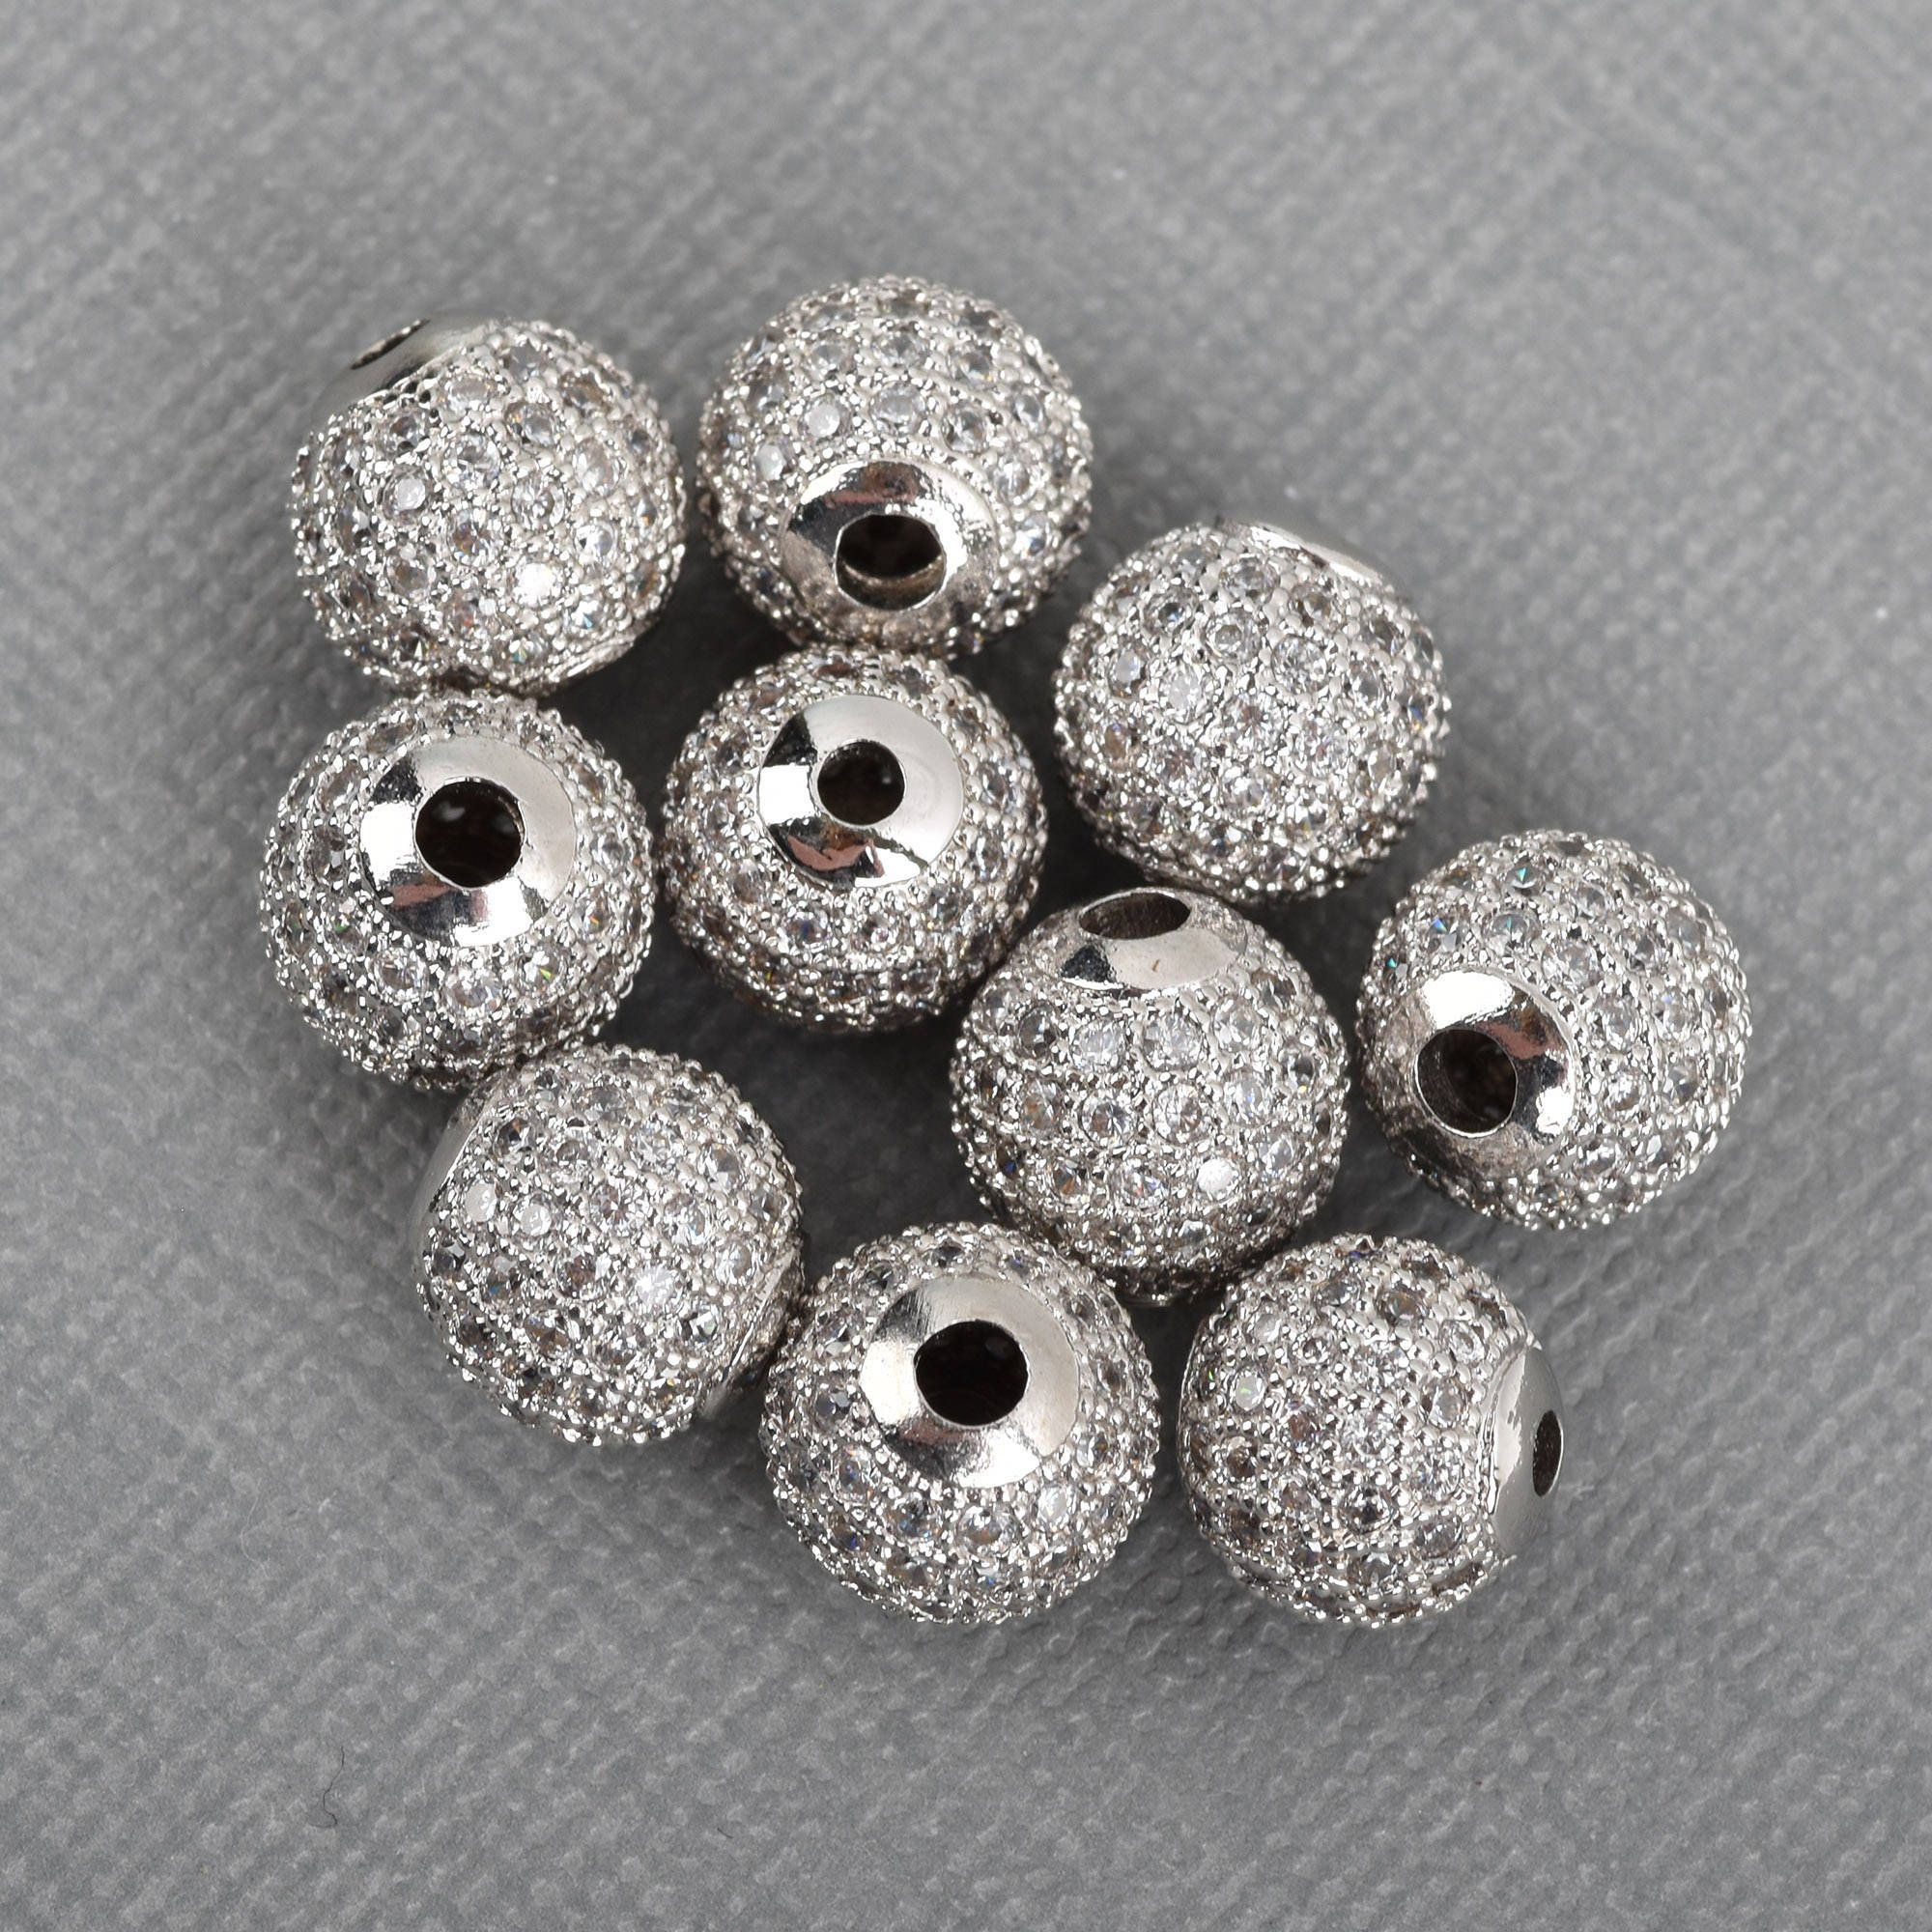 20 Tibetan Silver 10mm Disc Spacer Beads Jewellery Making